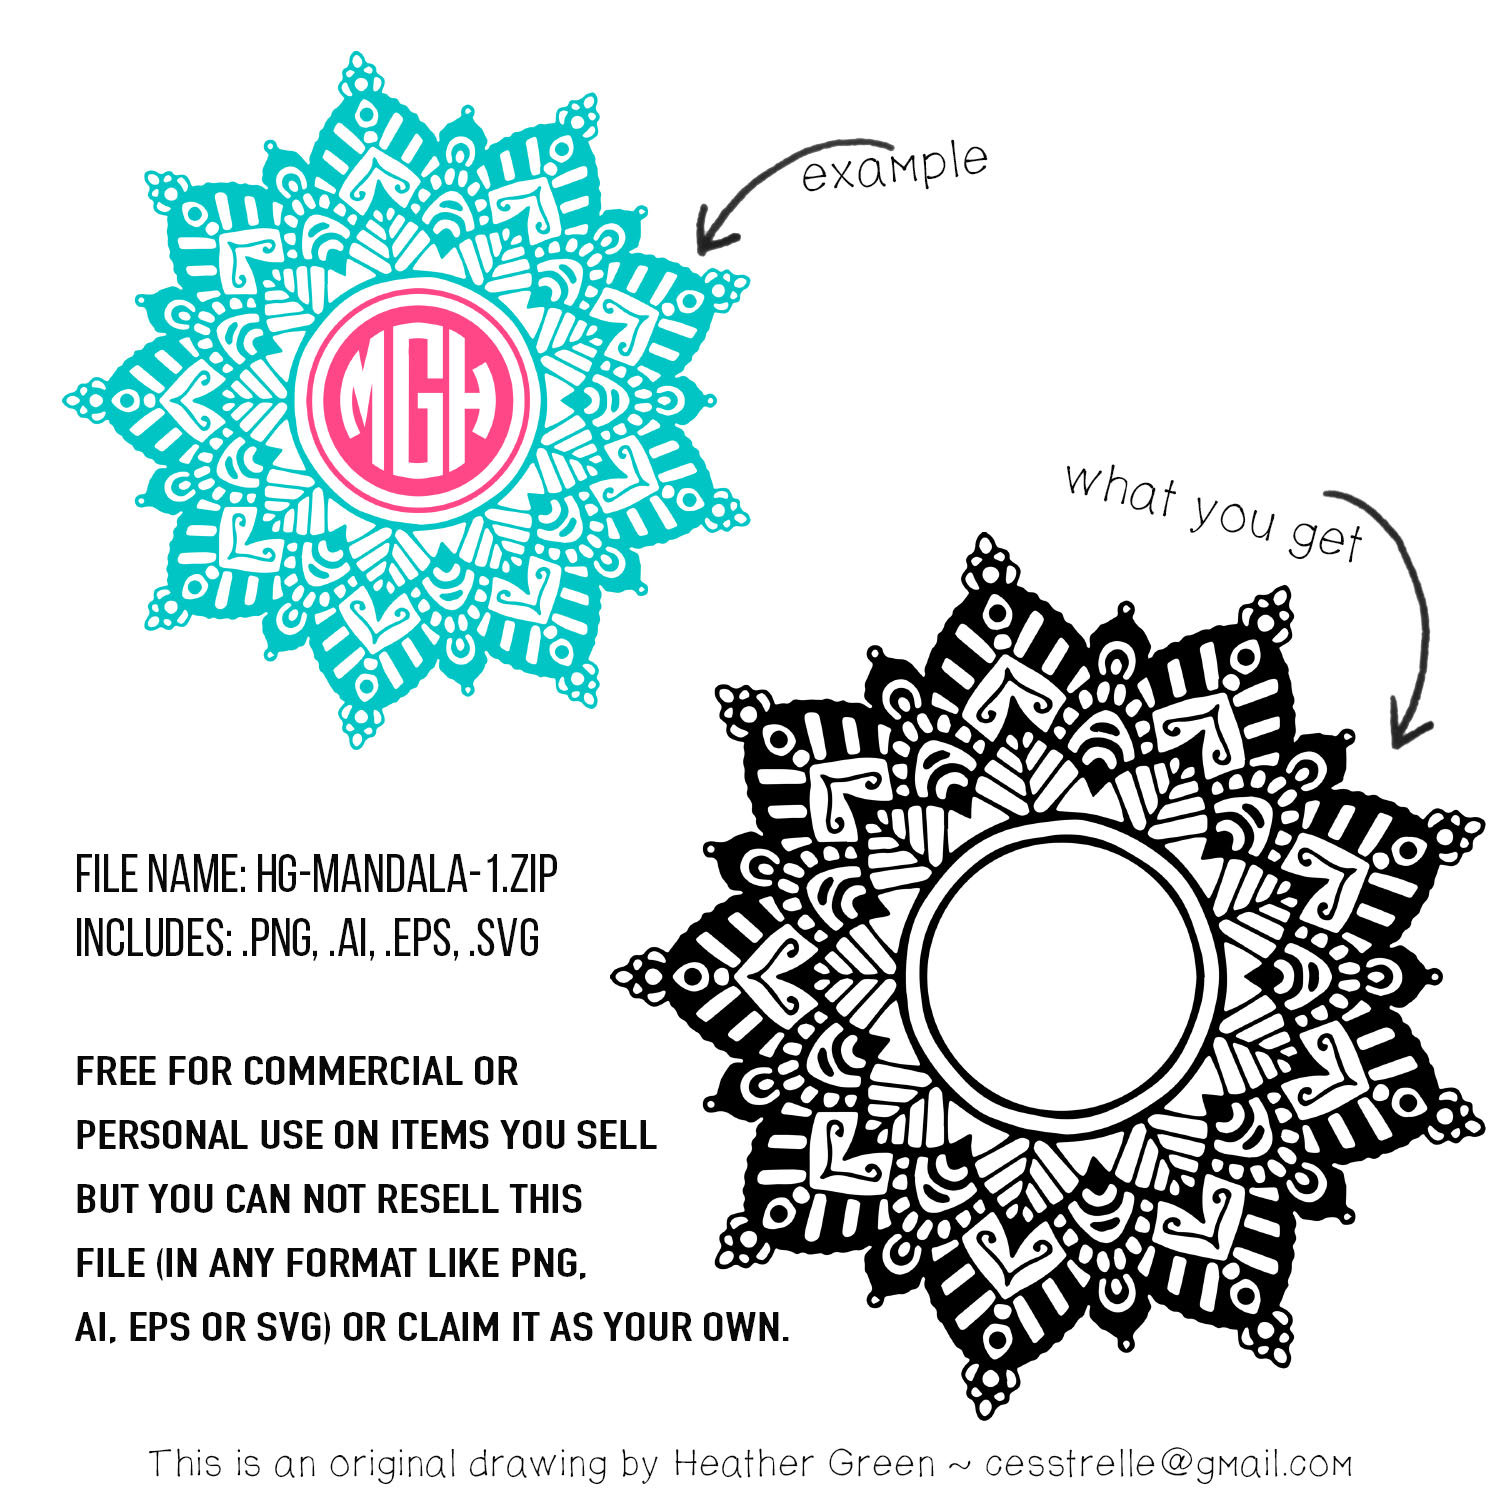 Free download ~ commercial use mandala design in png, ai, eps and svg formats ~ courtesy of hgdesigns.co